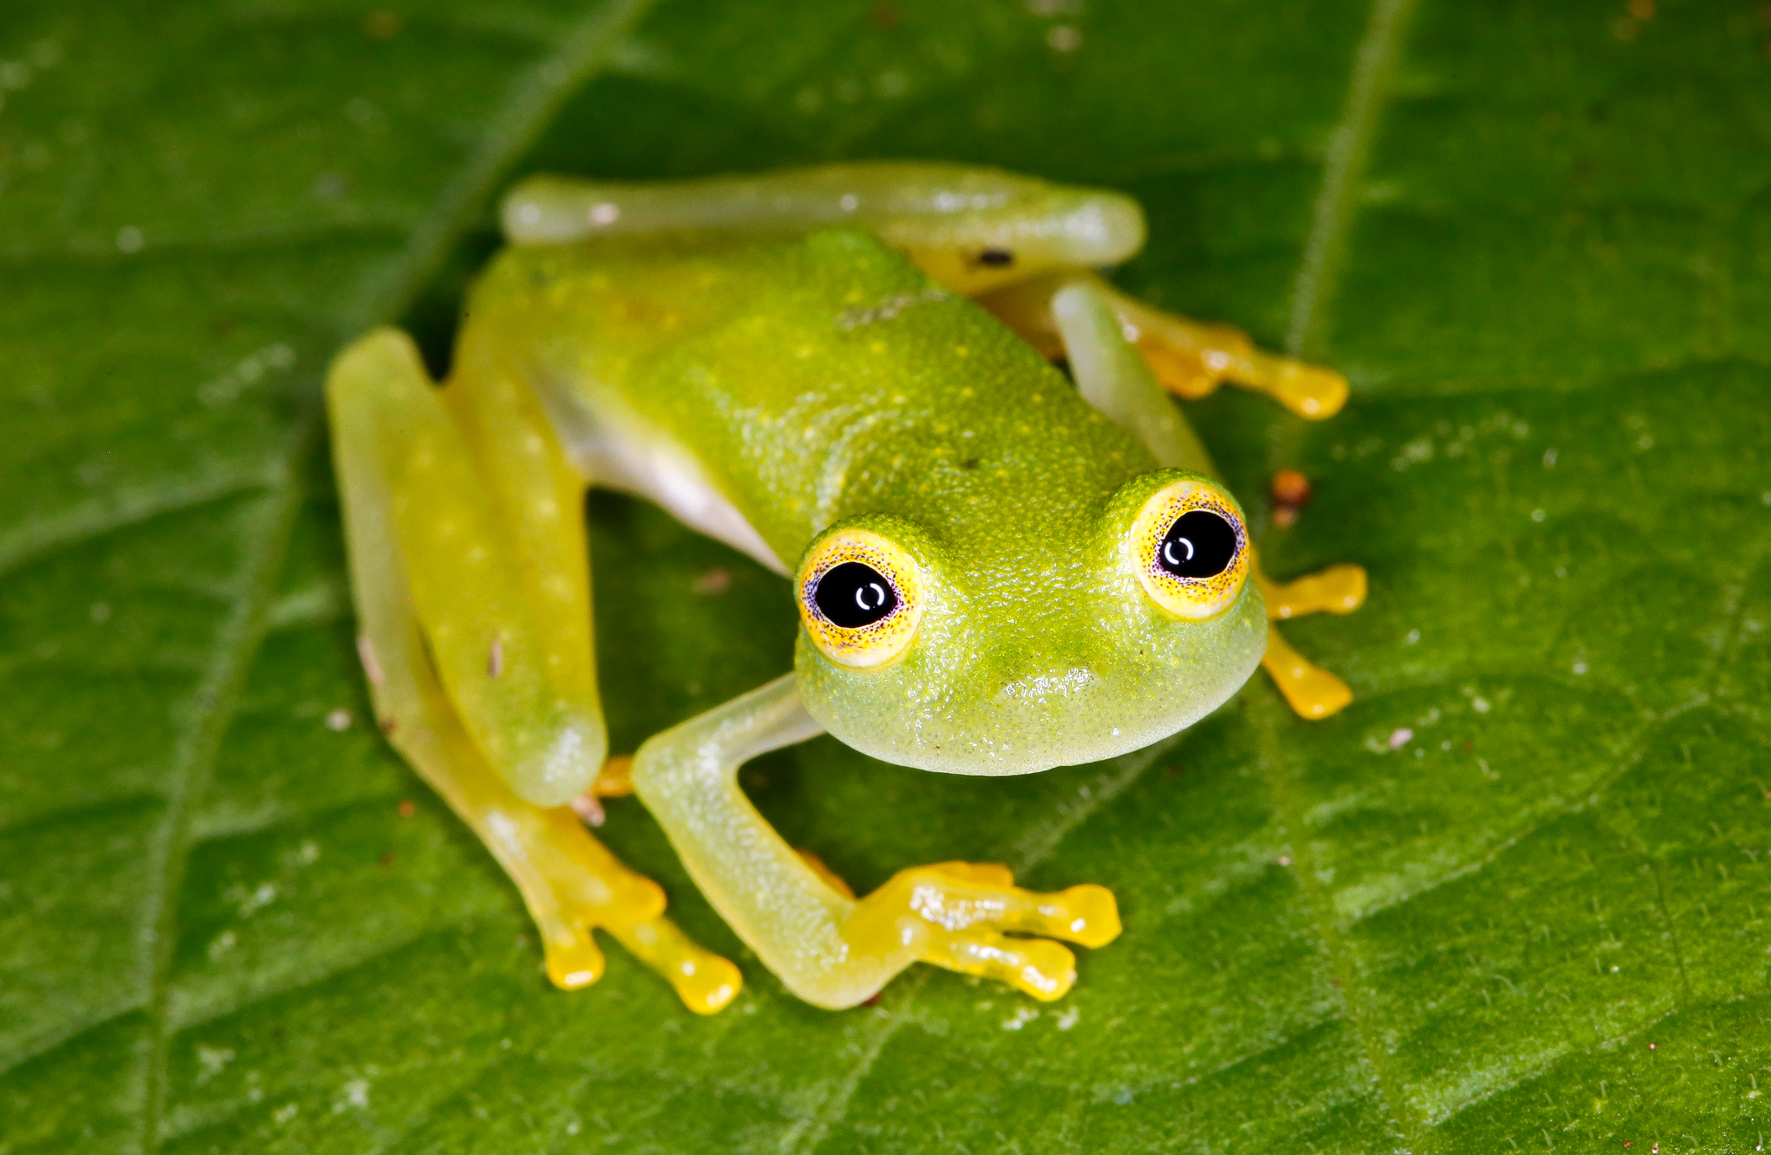 Bare Hearted Glass Frog-Taken at Catappa Waterfall in Carate, Costa Rica near Corcovado National Park. Photo by Ben Blankenship. April 2017.